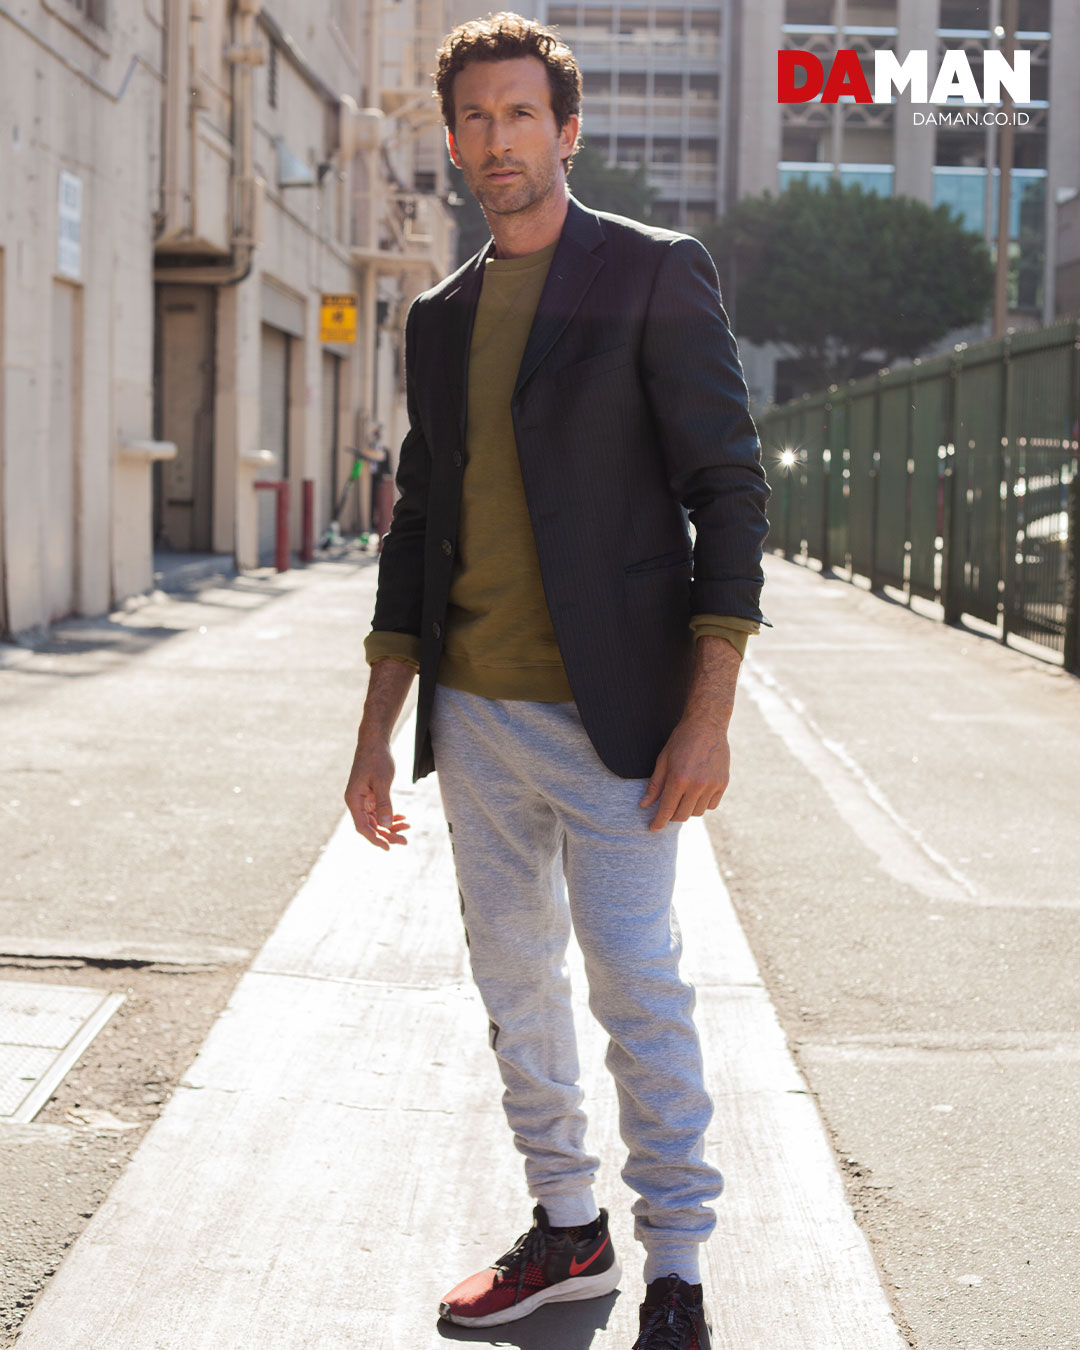 blazer by kenneth cole reaction, pullover by rupert & buckley, pants by uneek collection, shoes by Nike